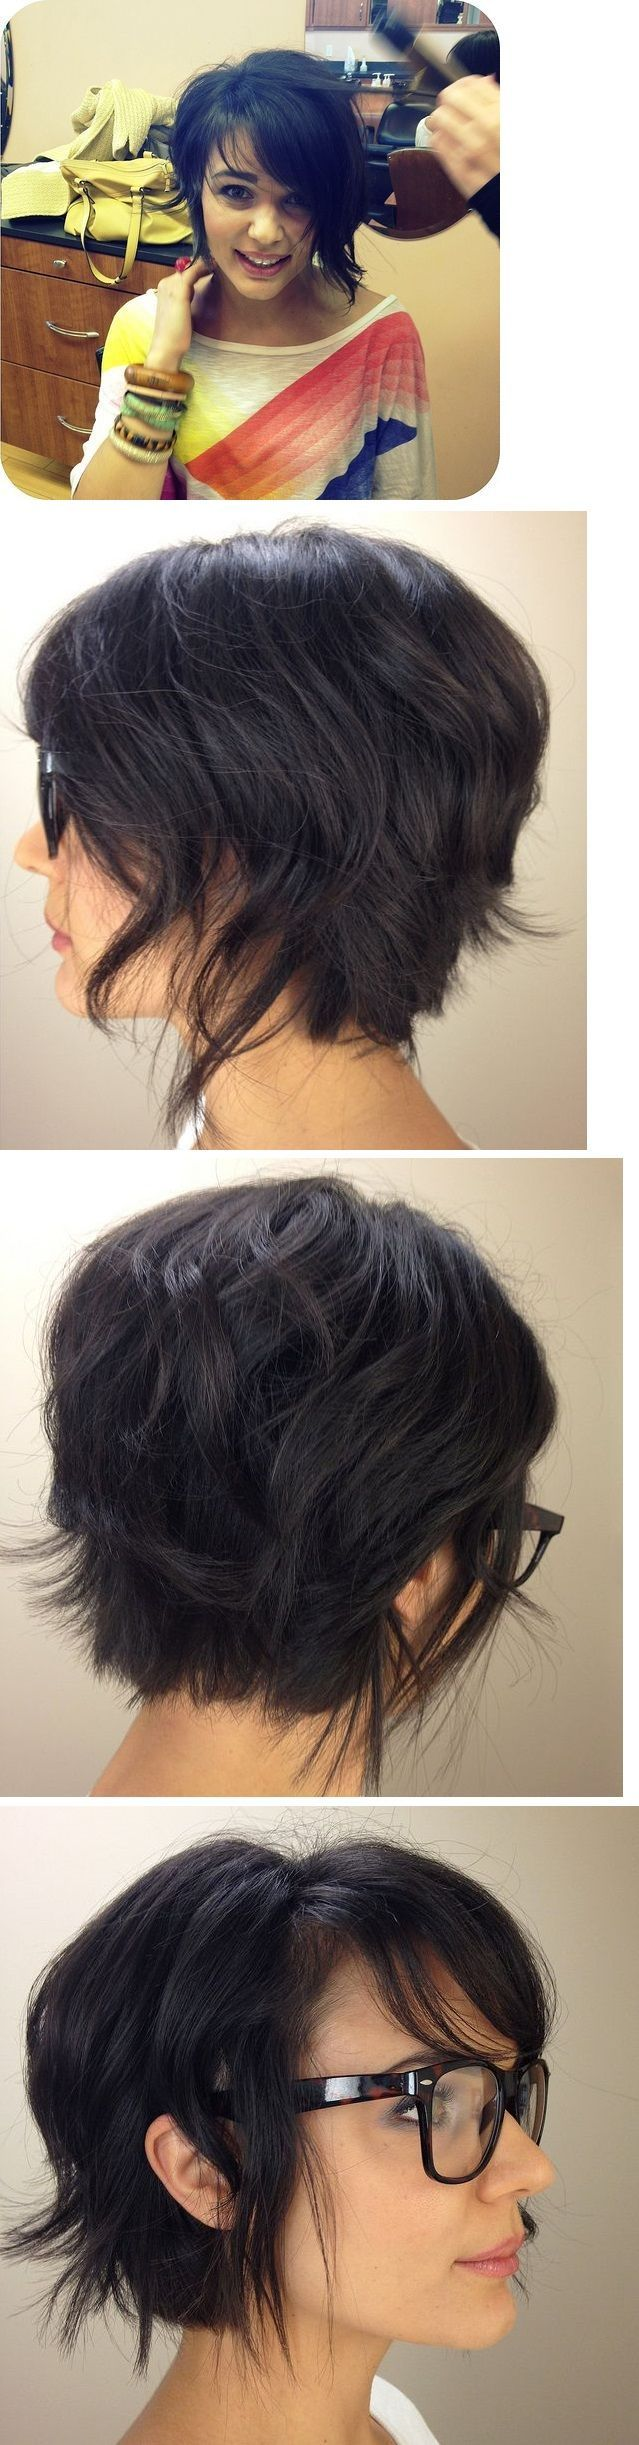 """7ca8232084c18ff802fb01d4e2f1c66d.jpg (639×2445) [ """"Pixie Short Hair Styles Back Pictures.I kinda love this one"""", """"29 Hairstyling Hacks Every Girl Should Know"""", """"In-between style while growing out my hair"""", """"Love this but not the longer piece in the front"""", """"Need a curling iron"""", """"Love this style, just need to go back to make it a bit shorter next time!"""", """"long pixie cut but with blonde highlights"""", """"& 24 would be great for my hair!"""", """"unsure if this would work on me though.""""..."""